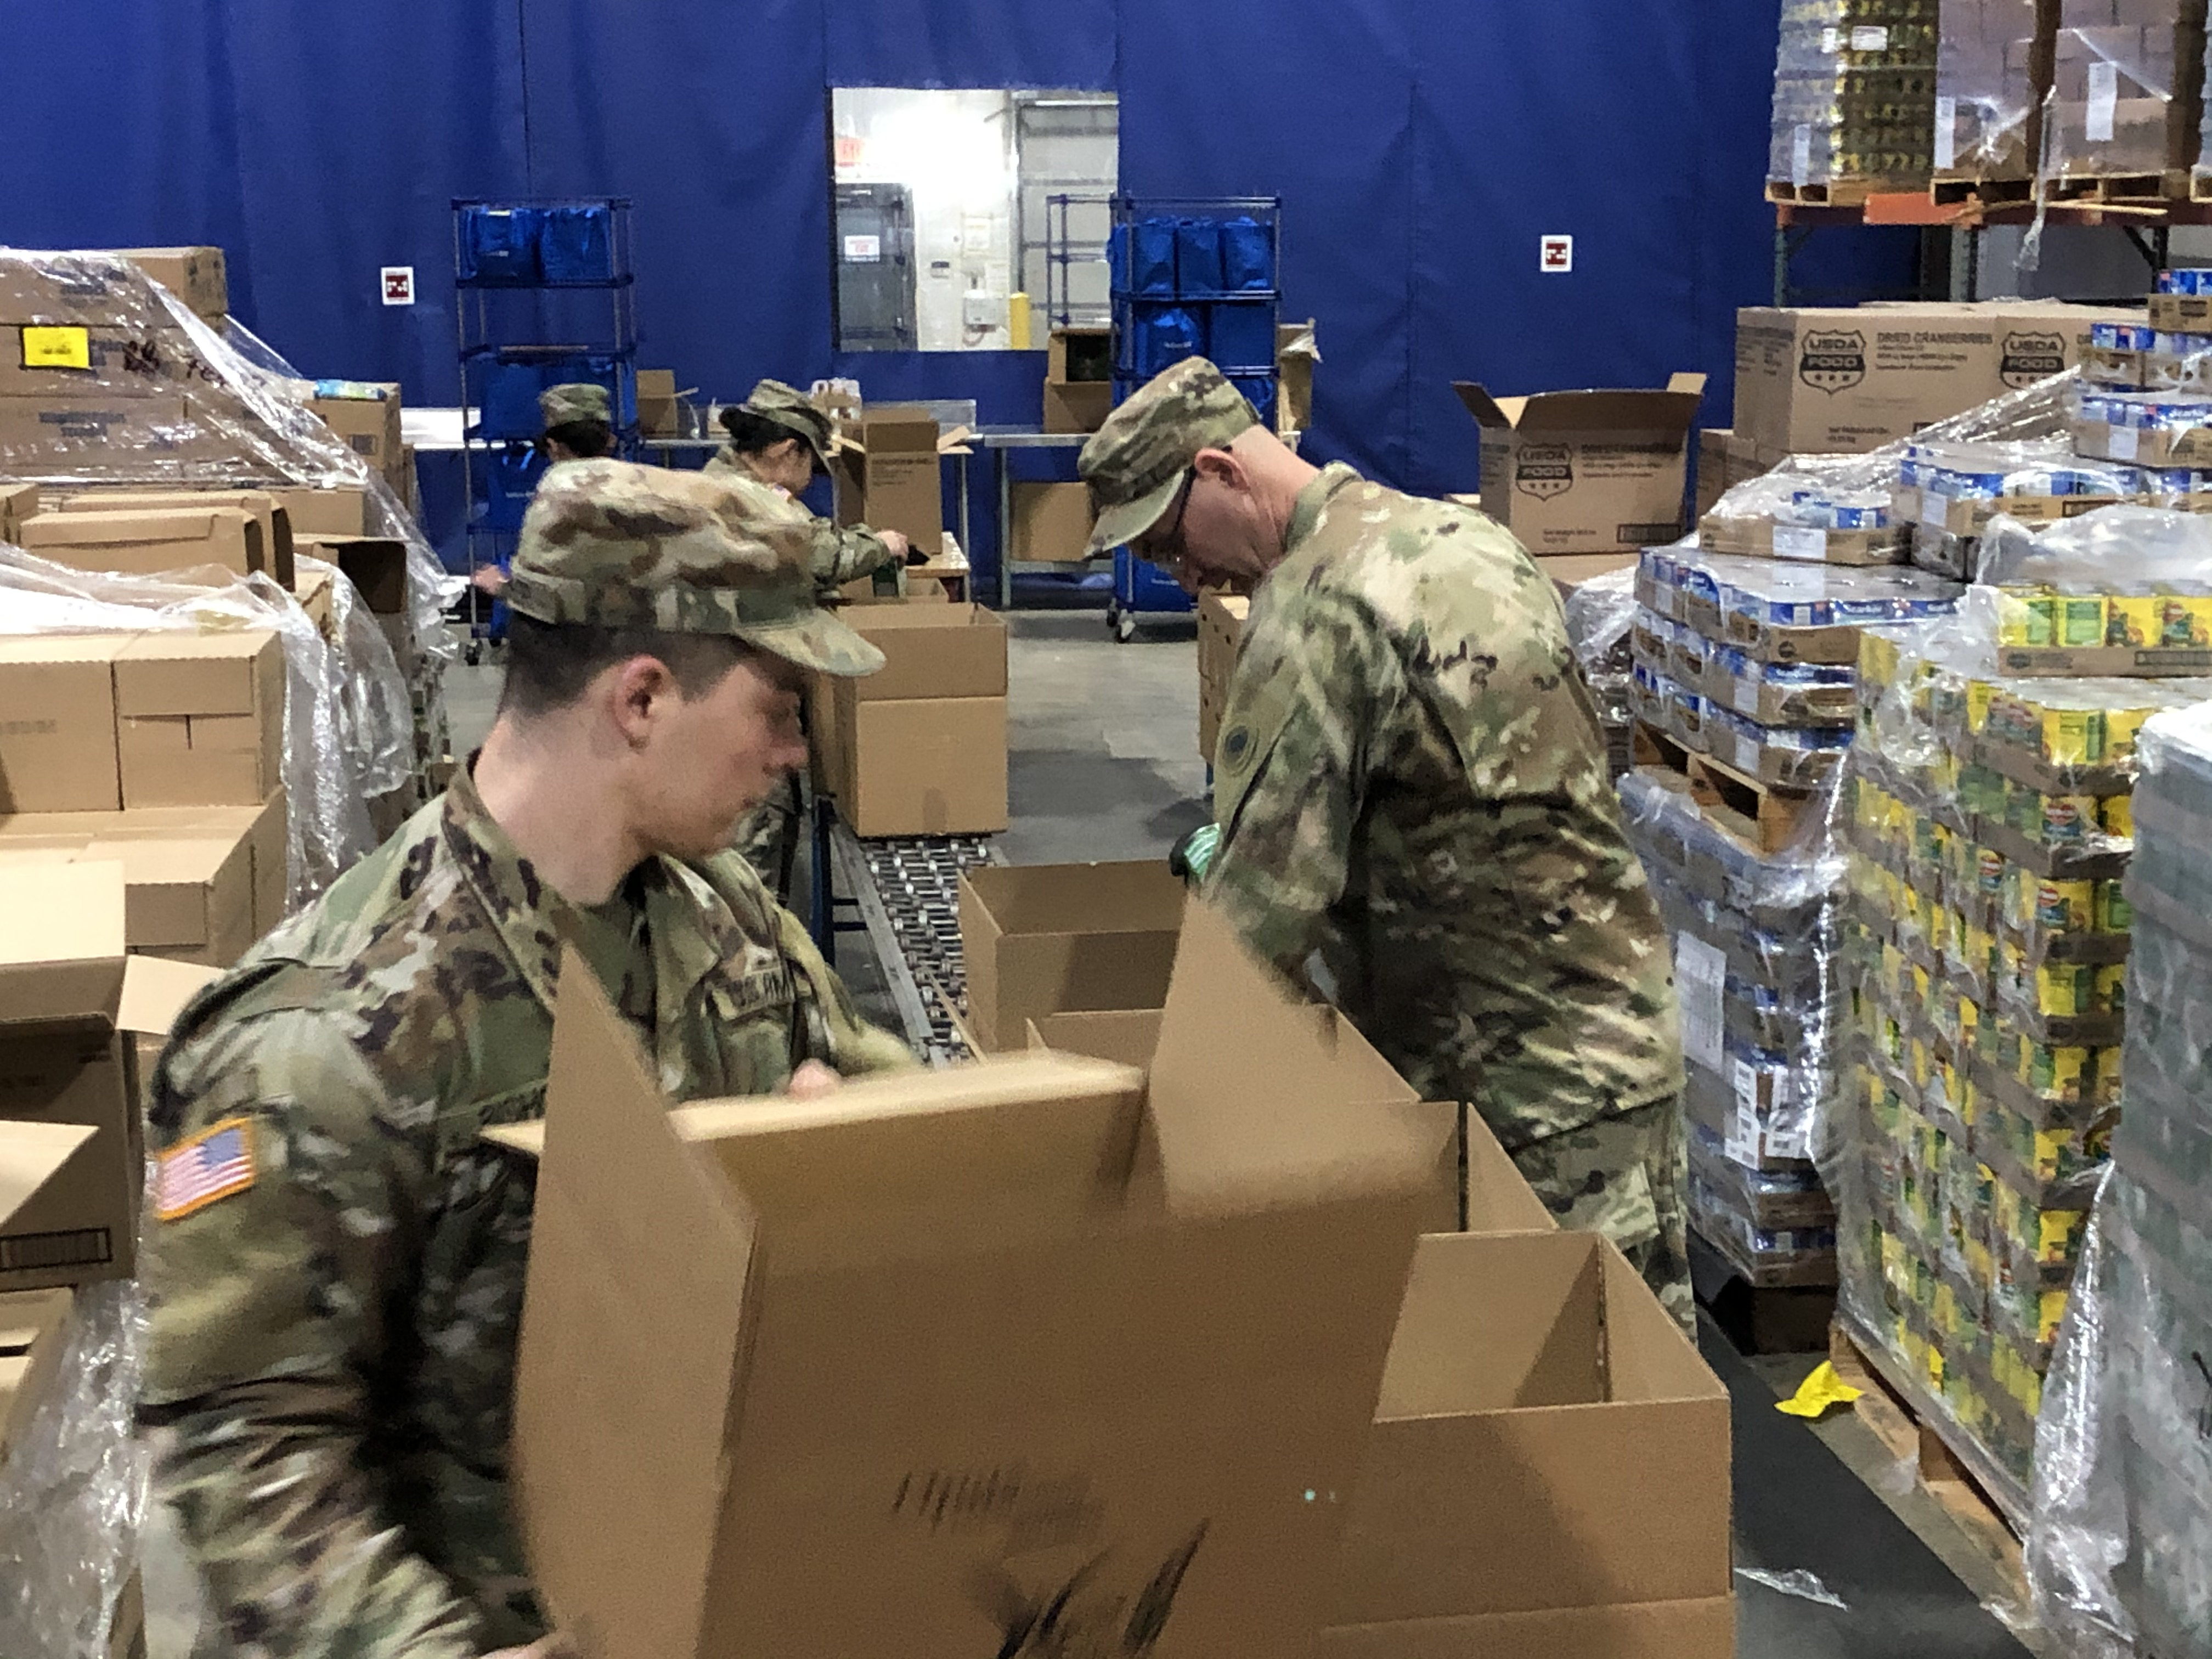 Soldiers pack boxes.